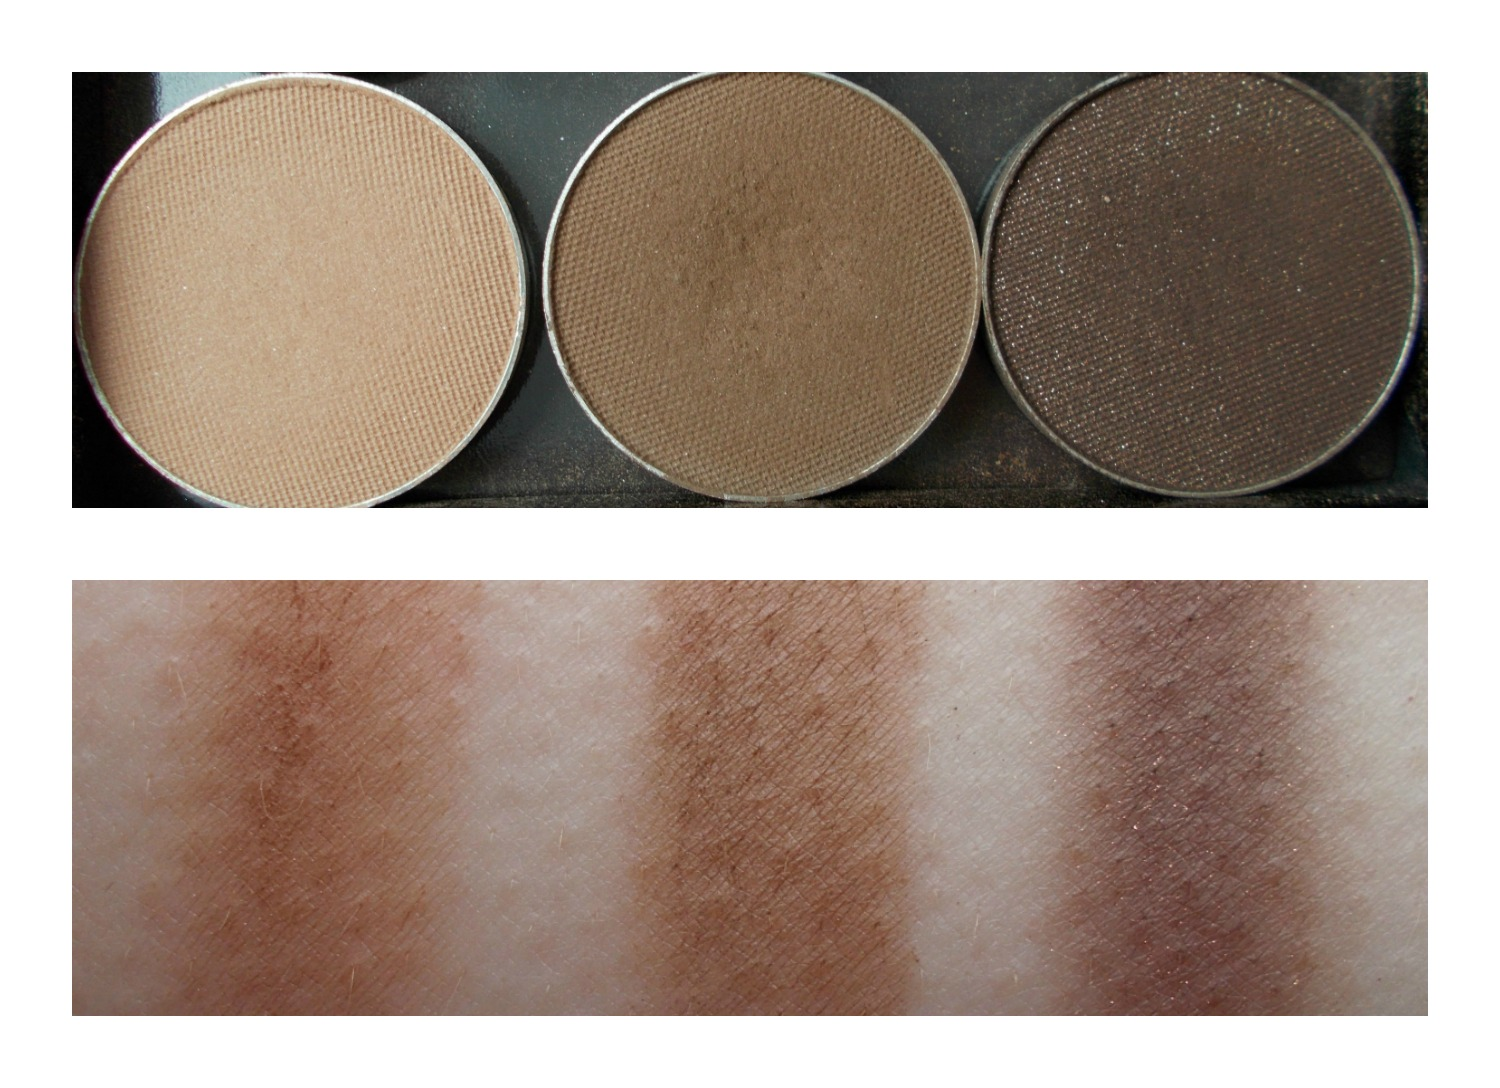 Makeup Geek latte mocha bada bing swatches